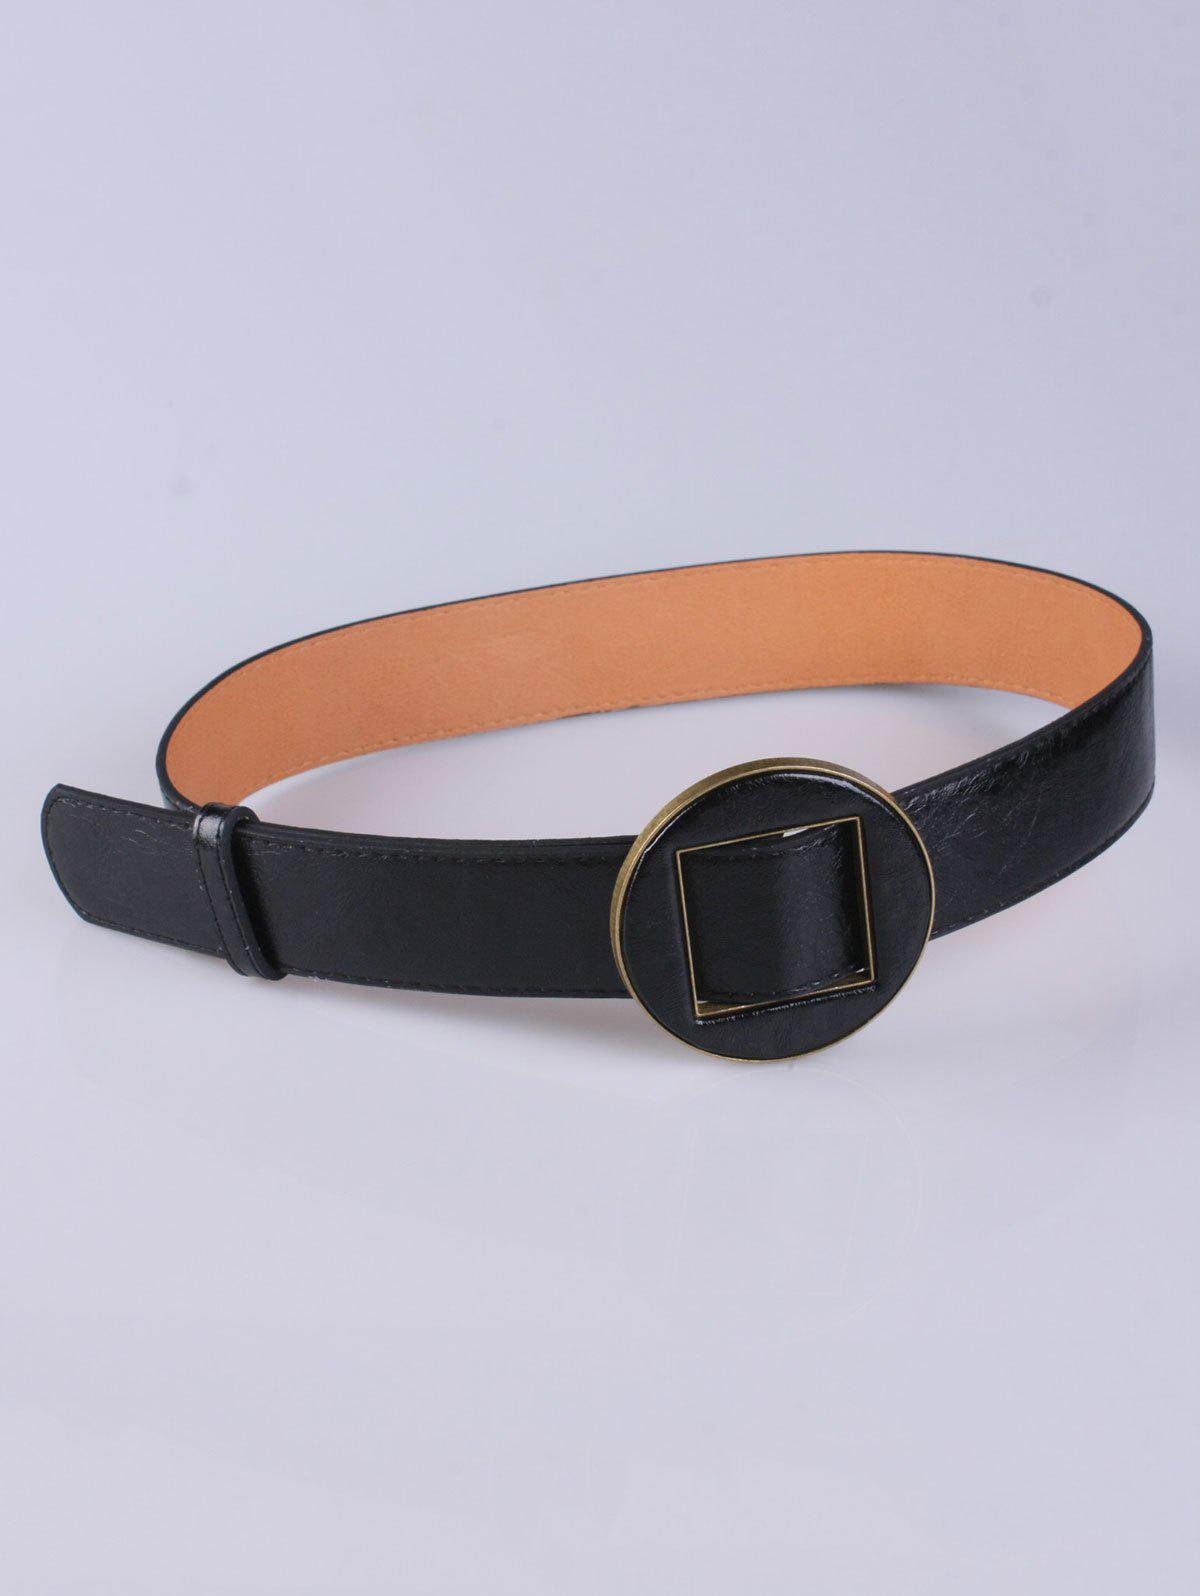 Cheap Coat Wear Hollow Square Round Buckle Wide Belt